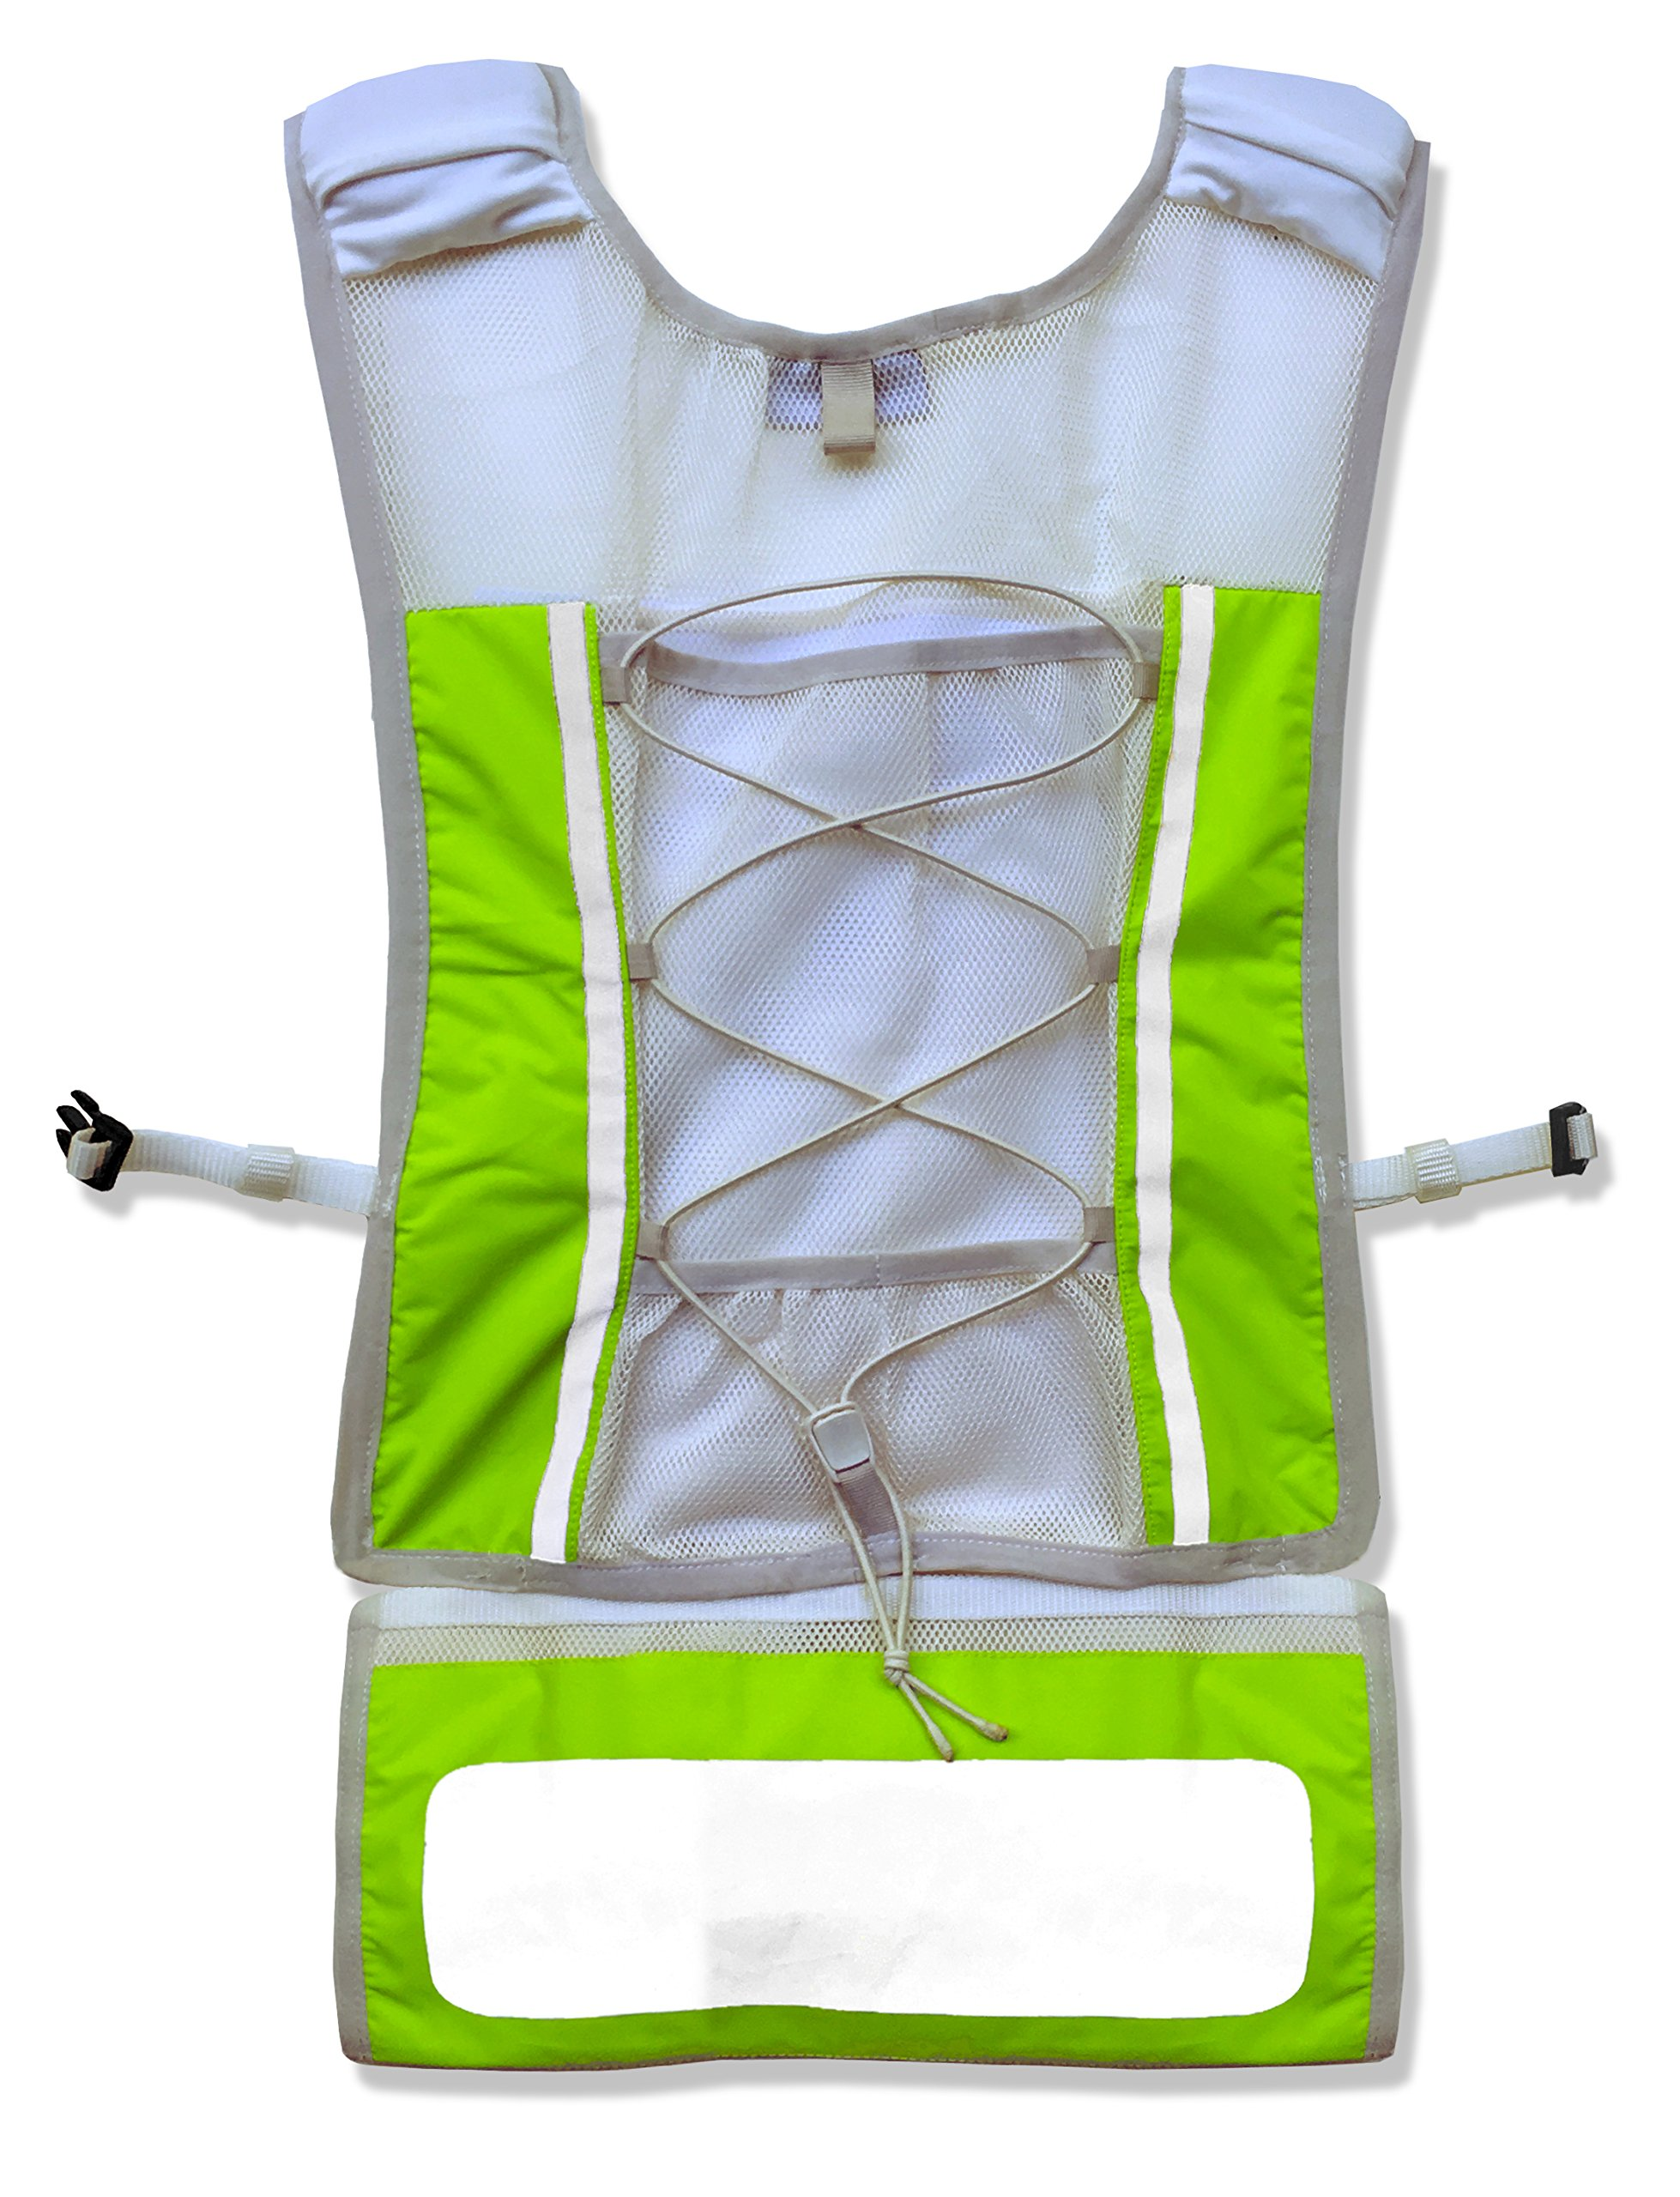 Roadnoise Long Haul Vest Running and Cycling Vest with speakers. Safer running and riding with music. (Hi Vis Green, X-Small/Small) by Roadnoise (Image #5)